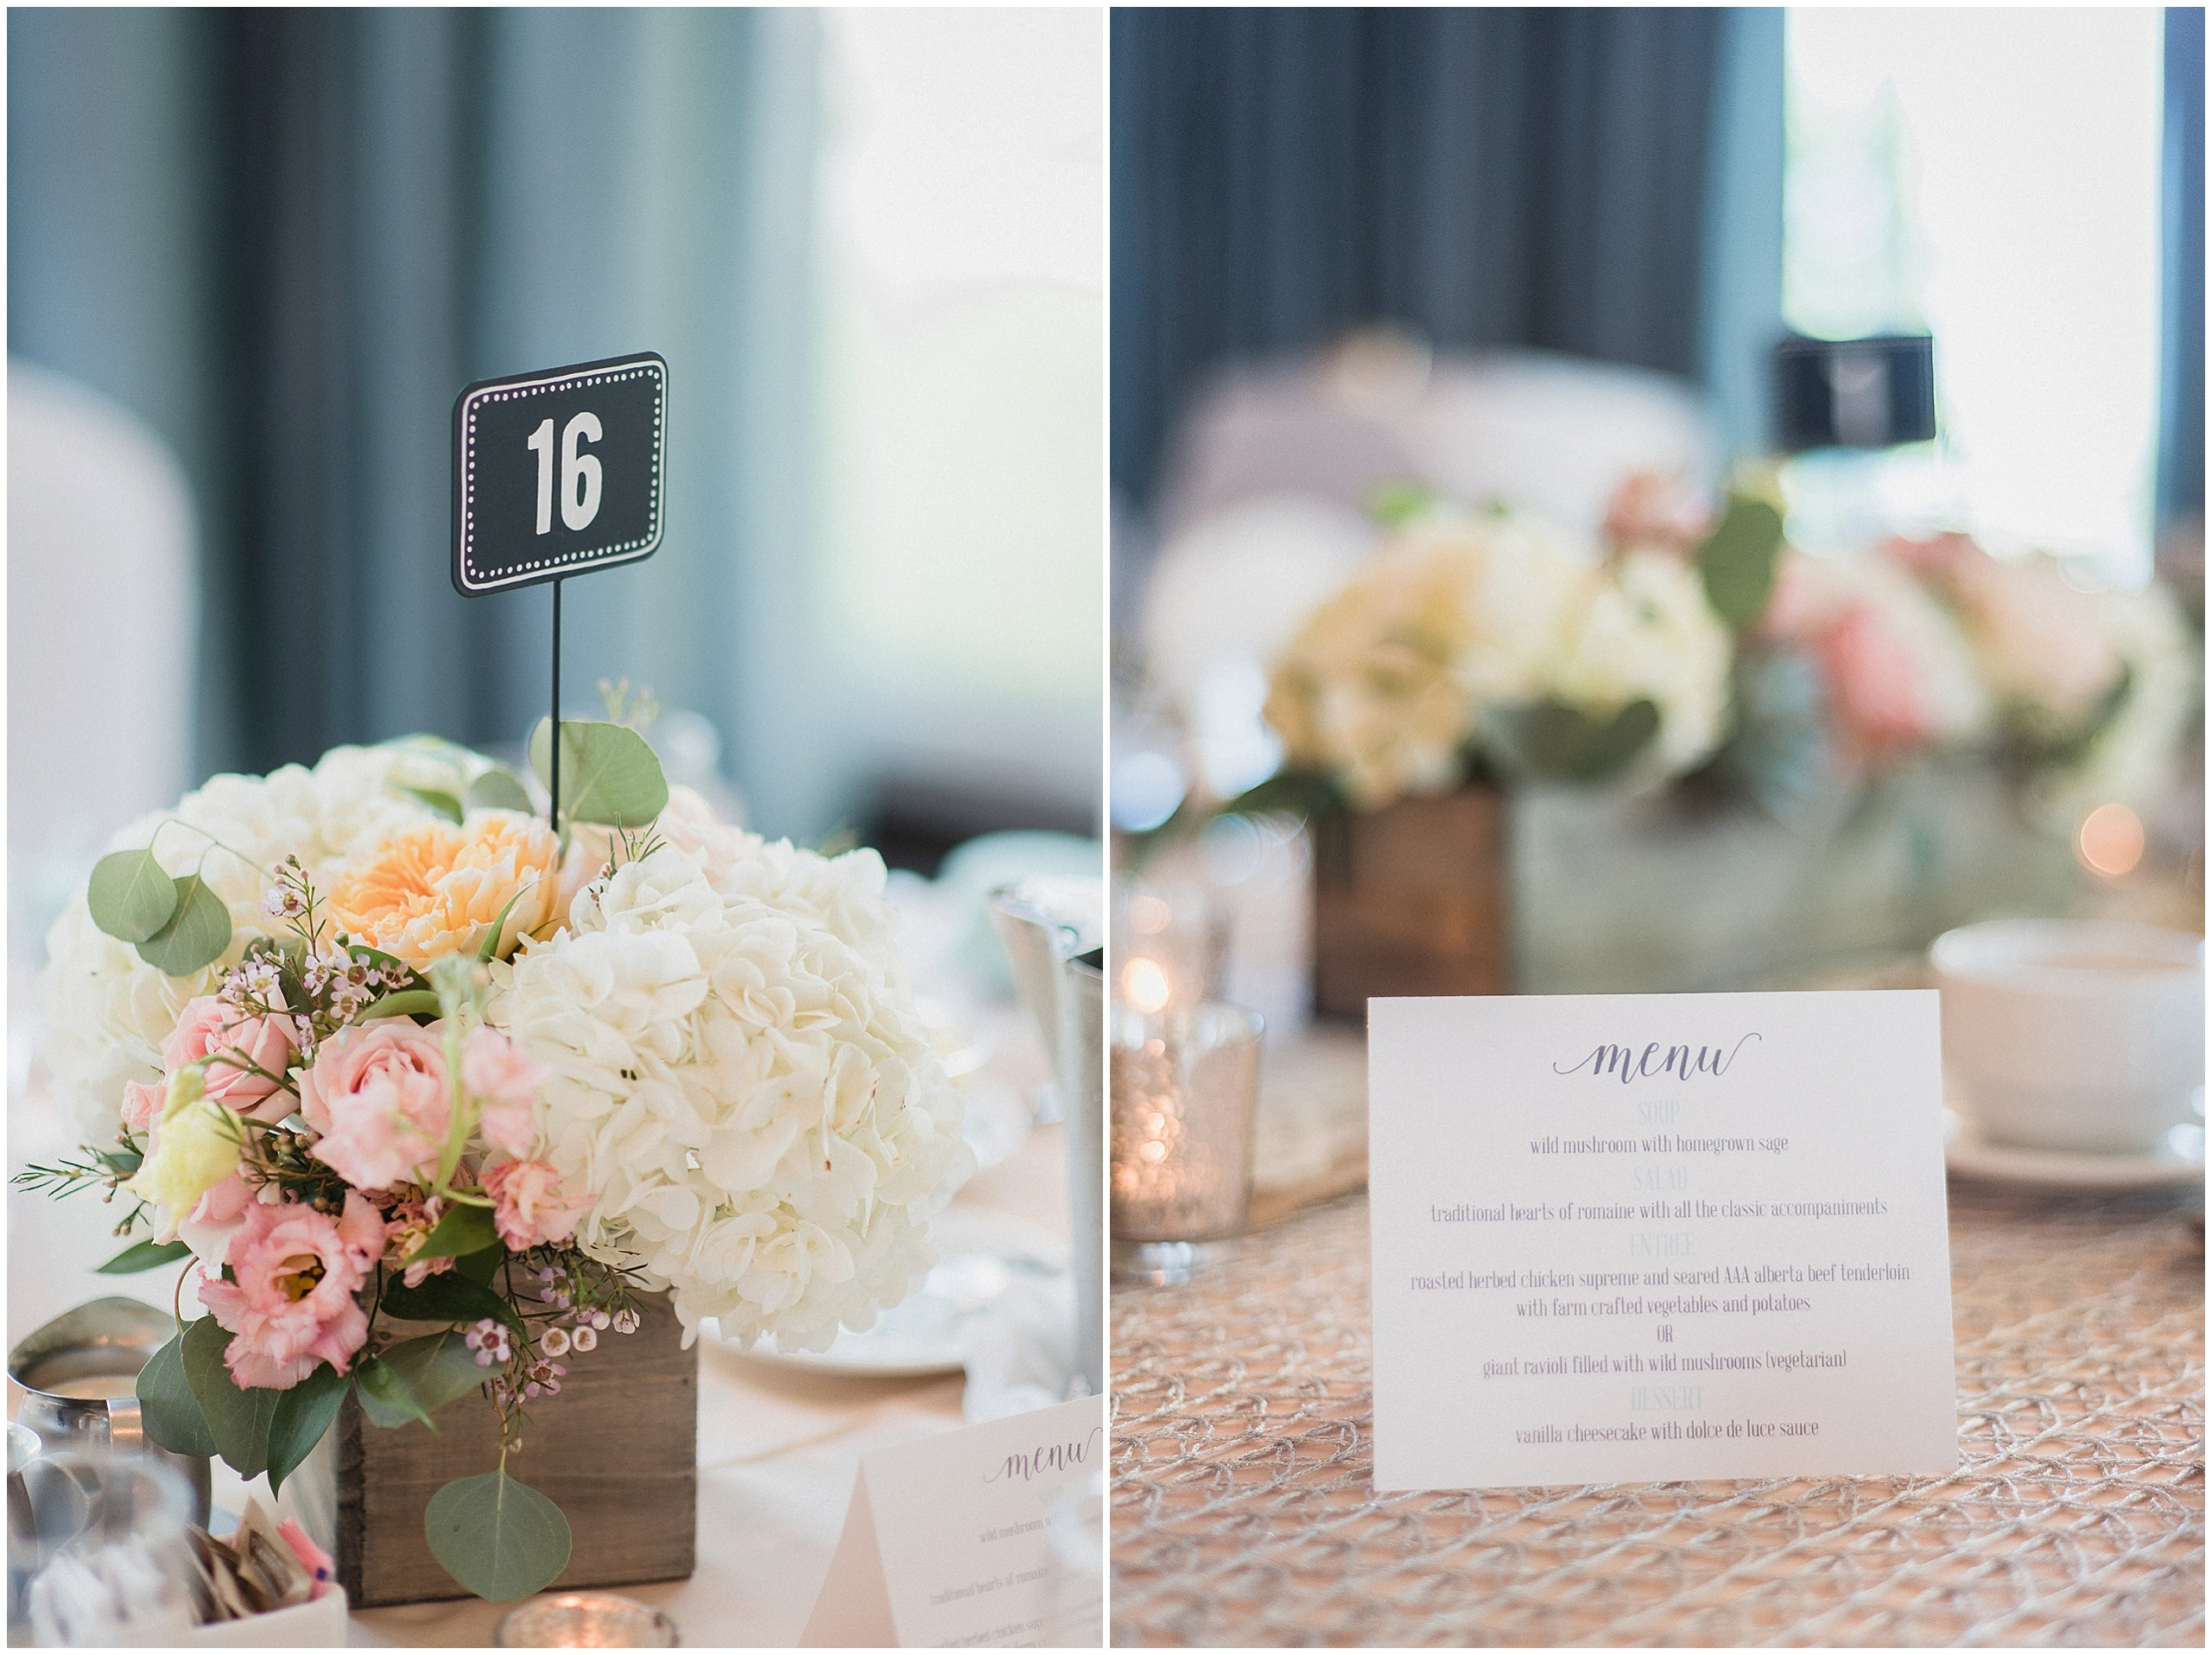 Floral wedding centre pieces in wooden boxes, featuring hydrangeas, succulents and peonies. Photographed by Jenn Kavanagh Photography